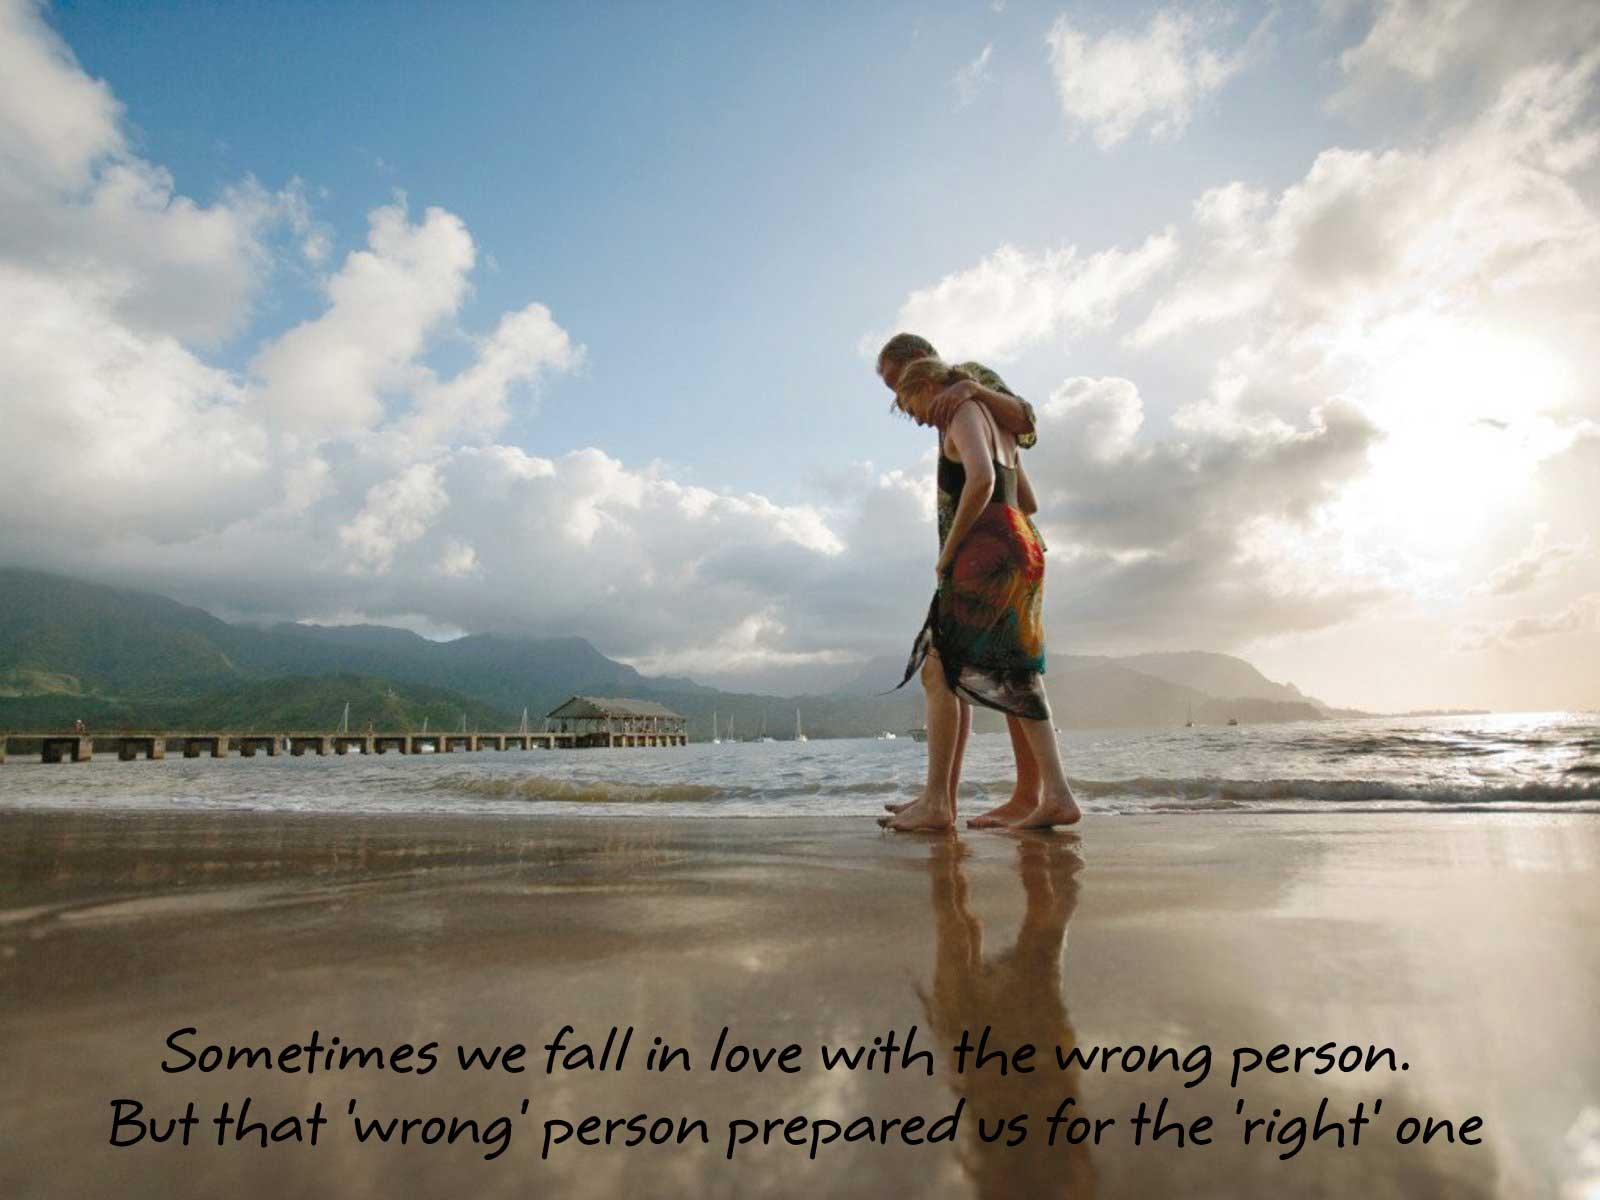 Falling in love with the right person at the wrong time quotes